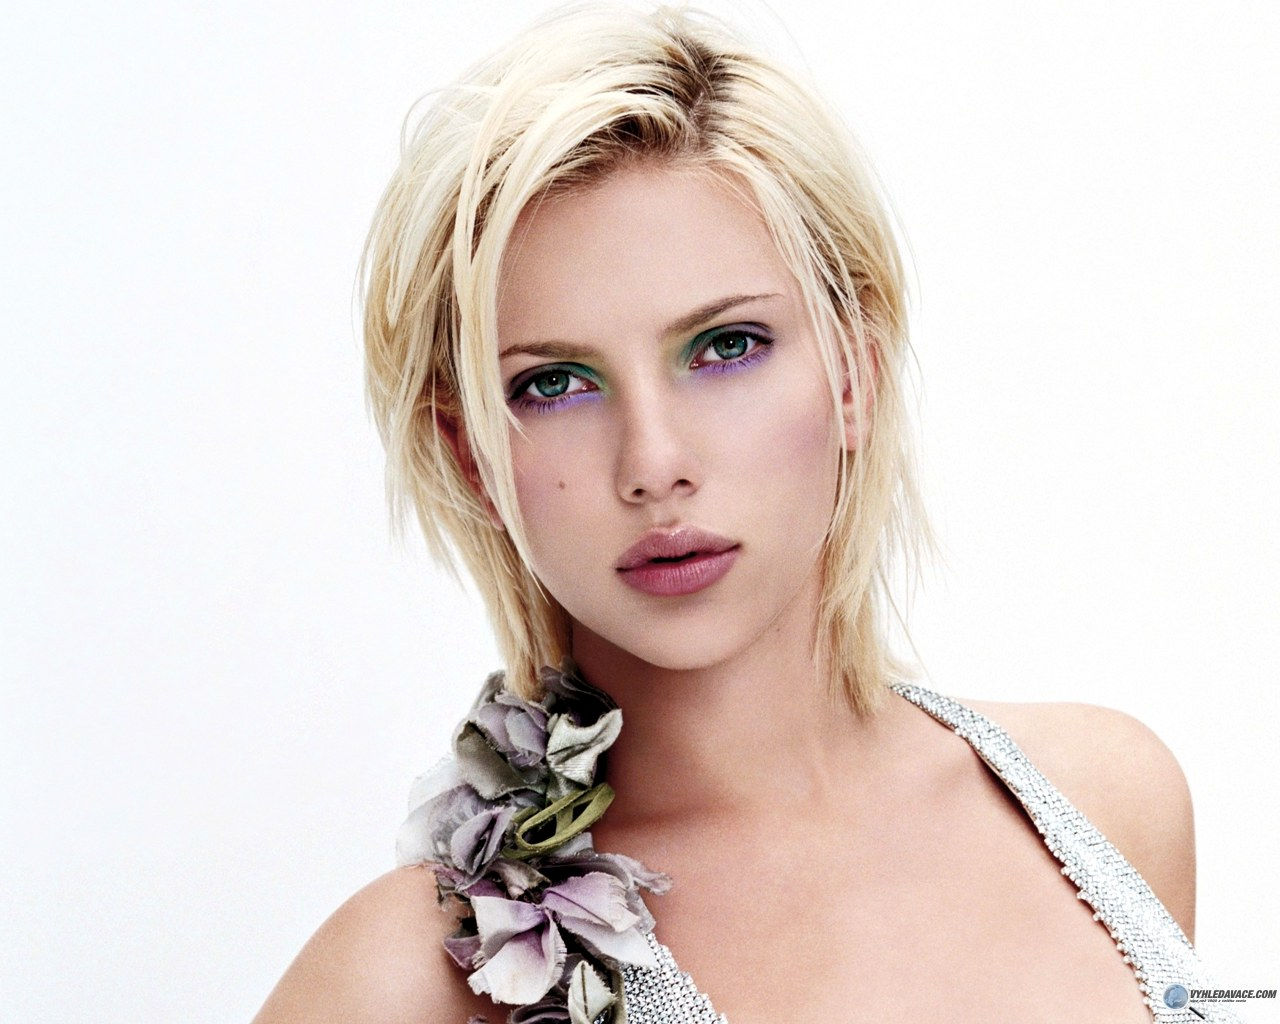 Scarlett Johansson | Ink of Lifescarlet johanson 